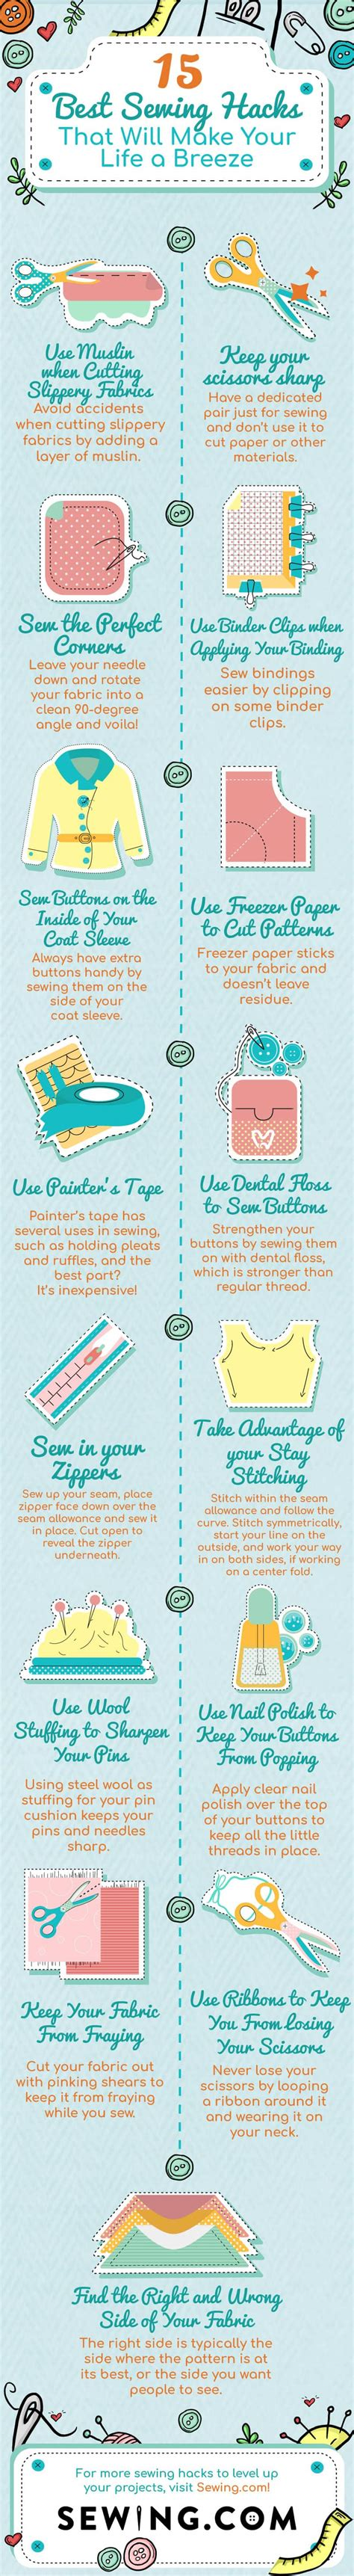 25 life hacks to make midlife a breeze the back forty fliers 35 best sewing hacks that will make your life a breeze